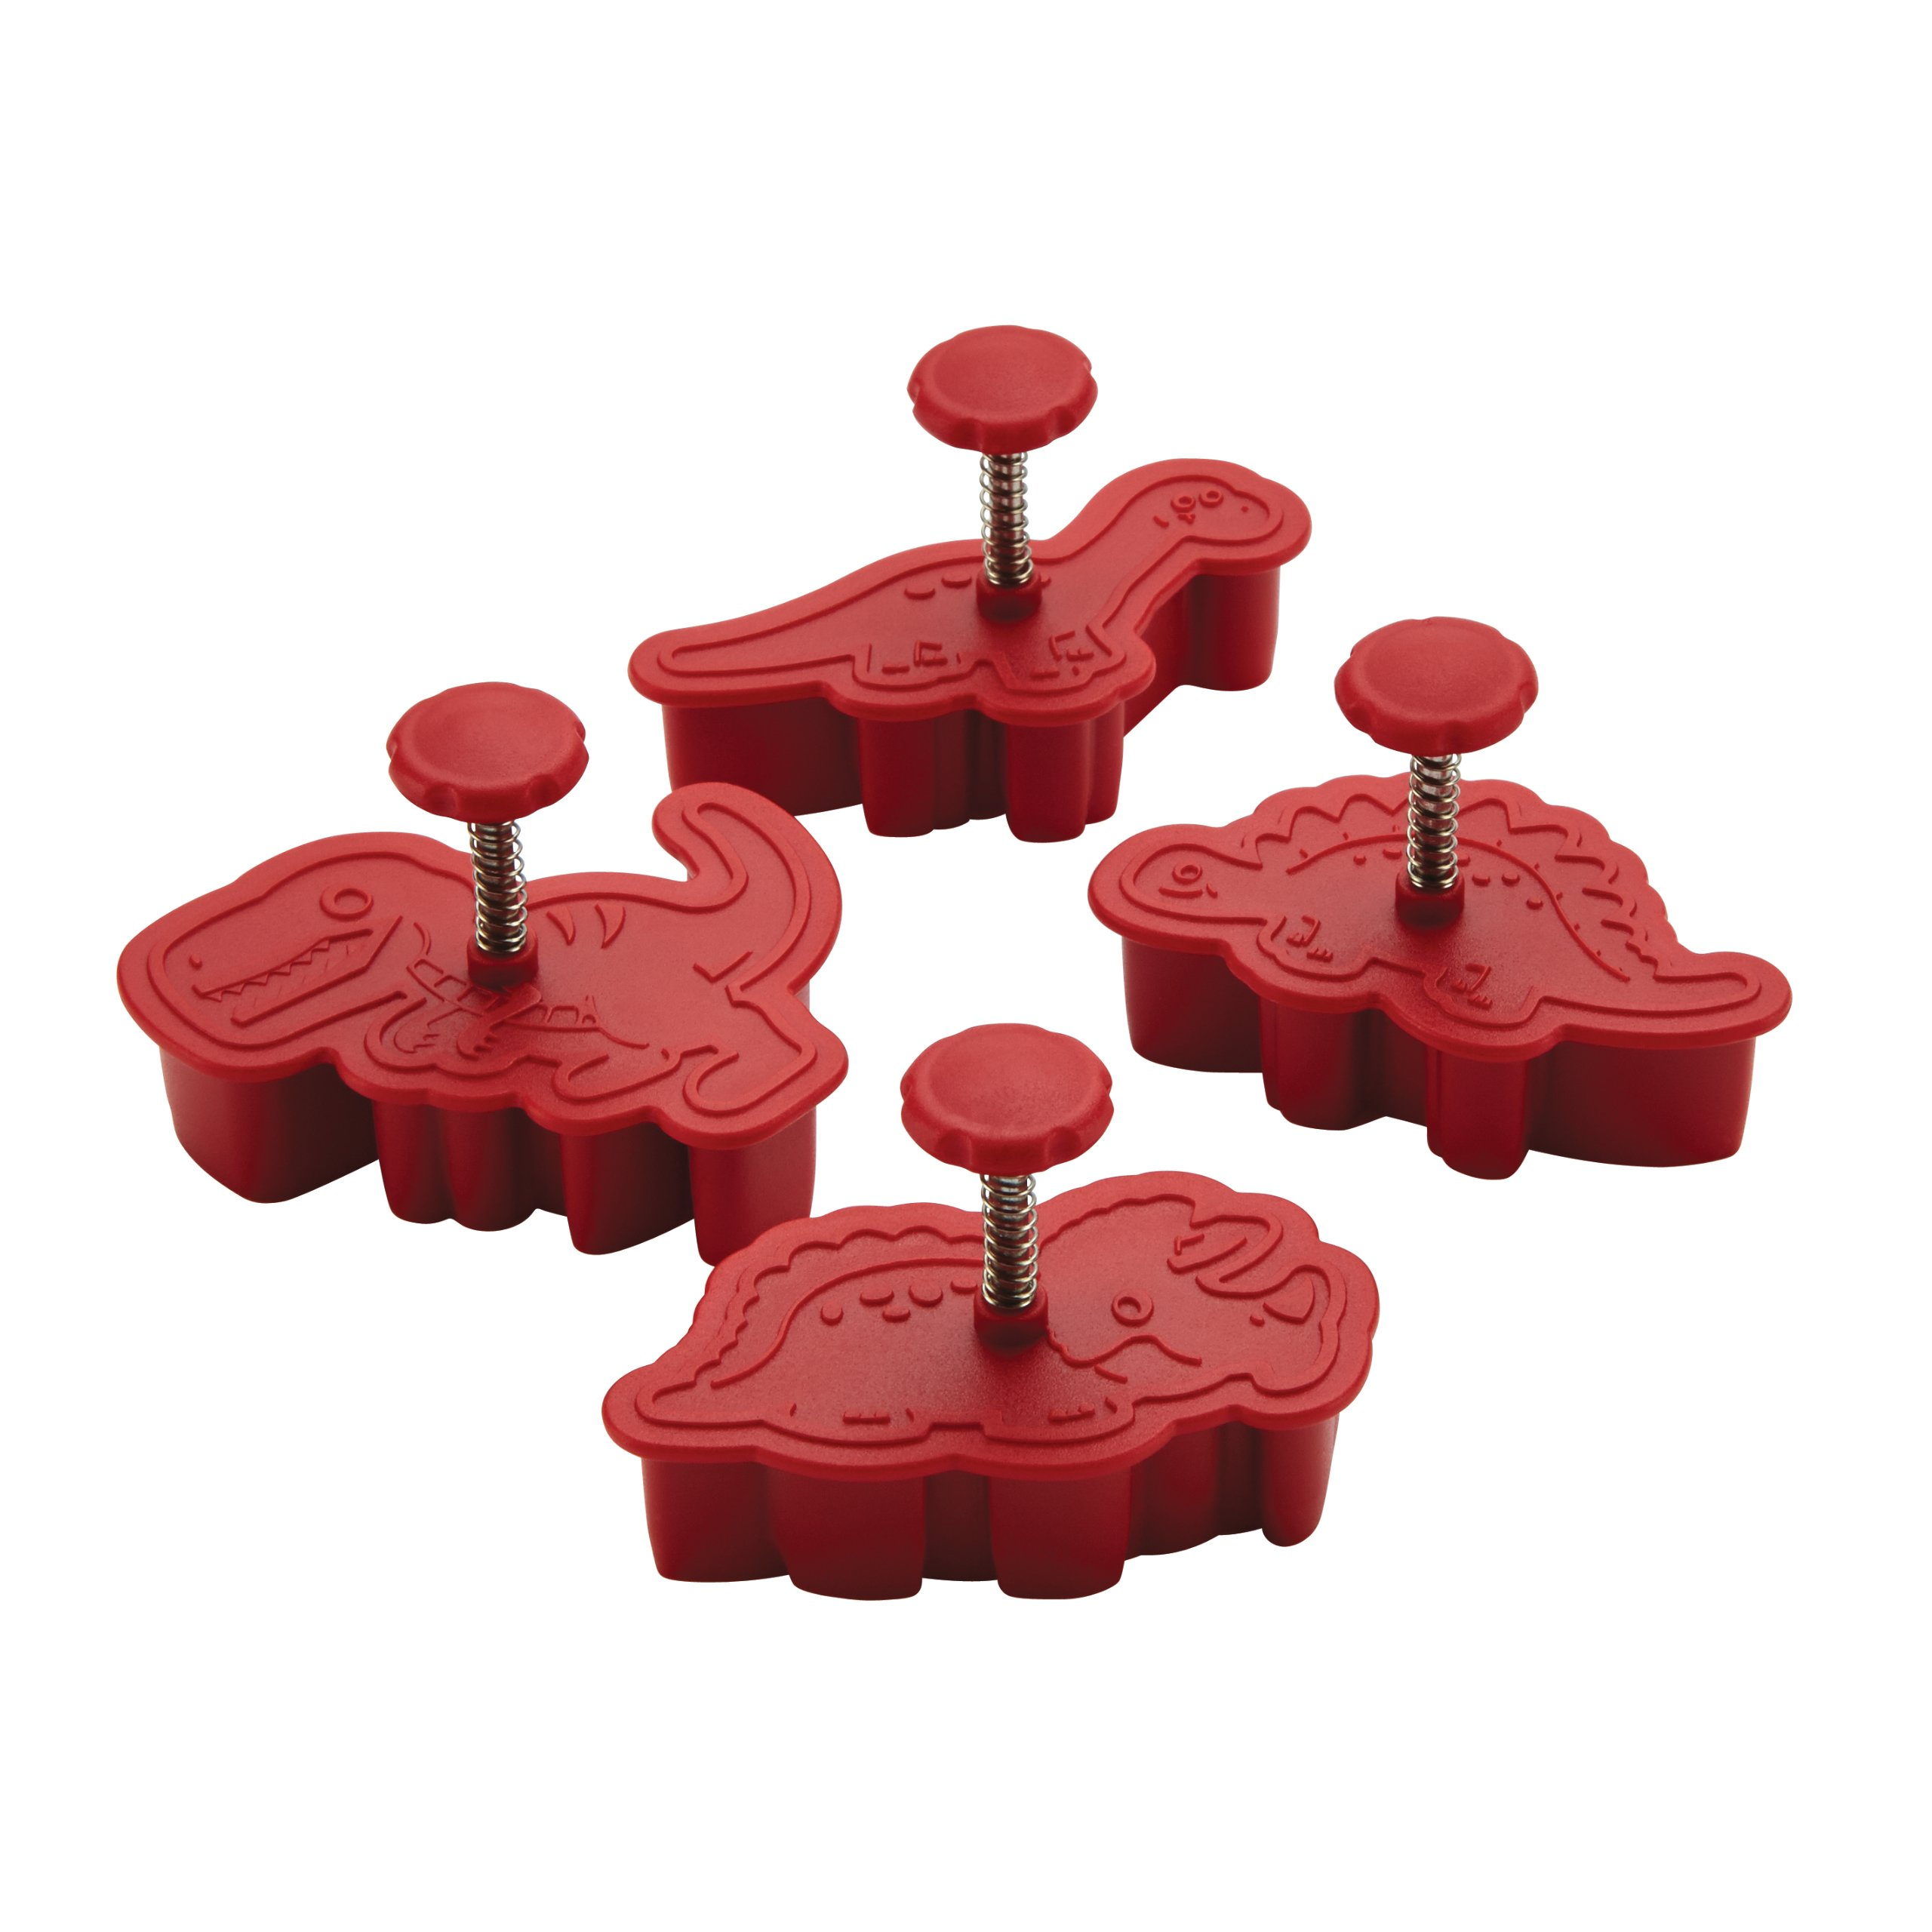 Cake Boss 59463 Decorating Tools Fondant Press, Stamp Set, 4 Piece, Red by Cake Boss